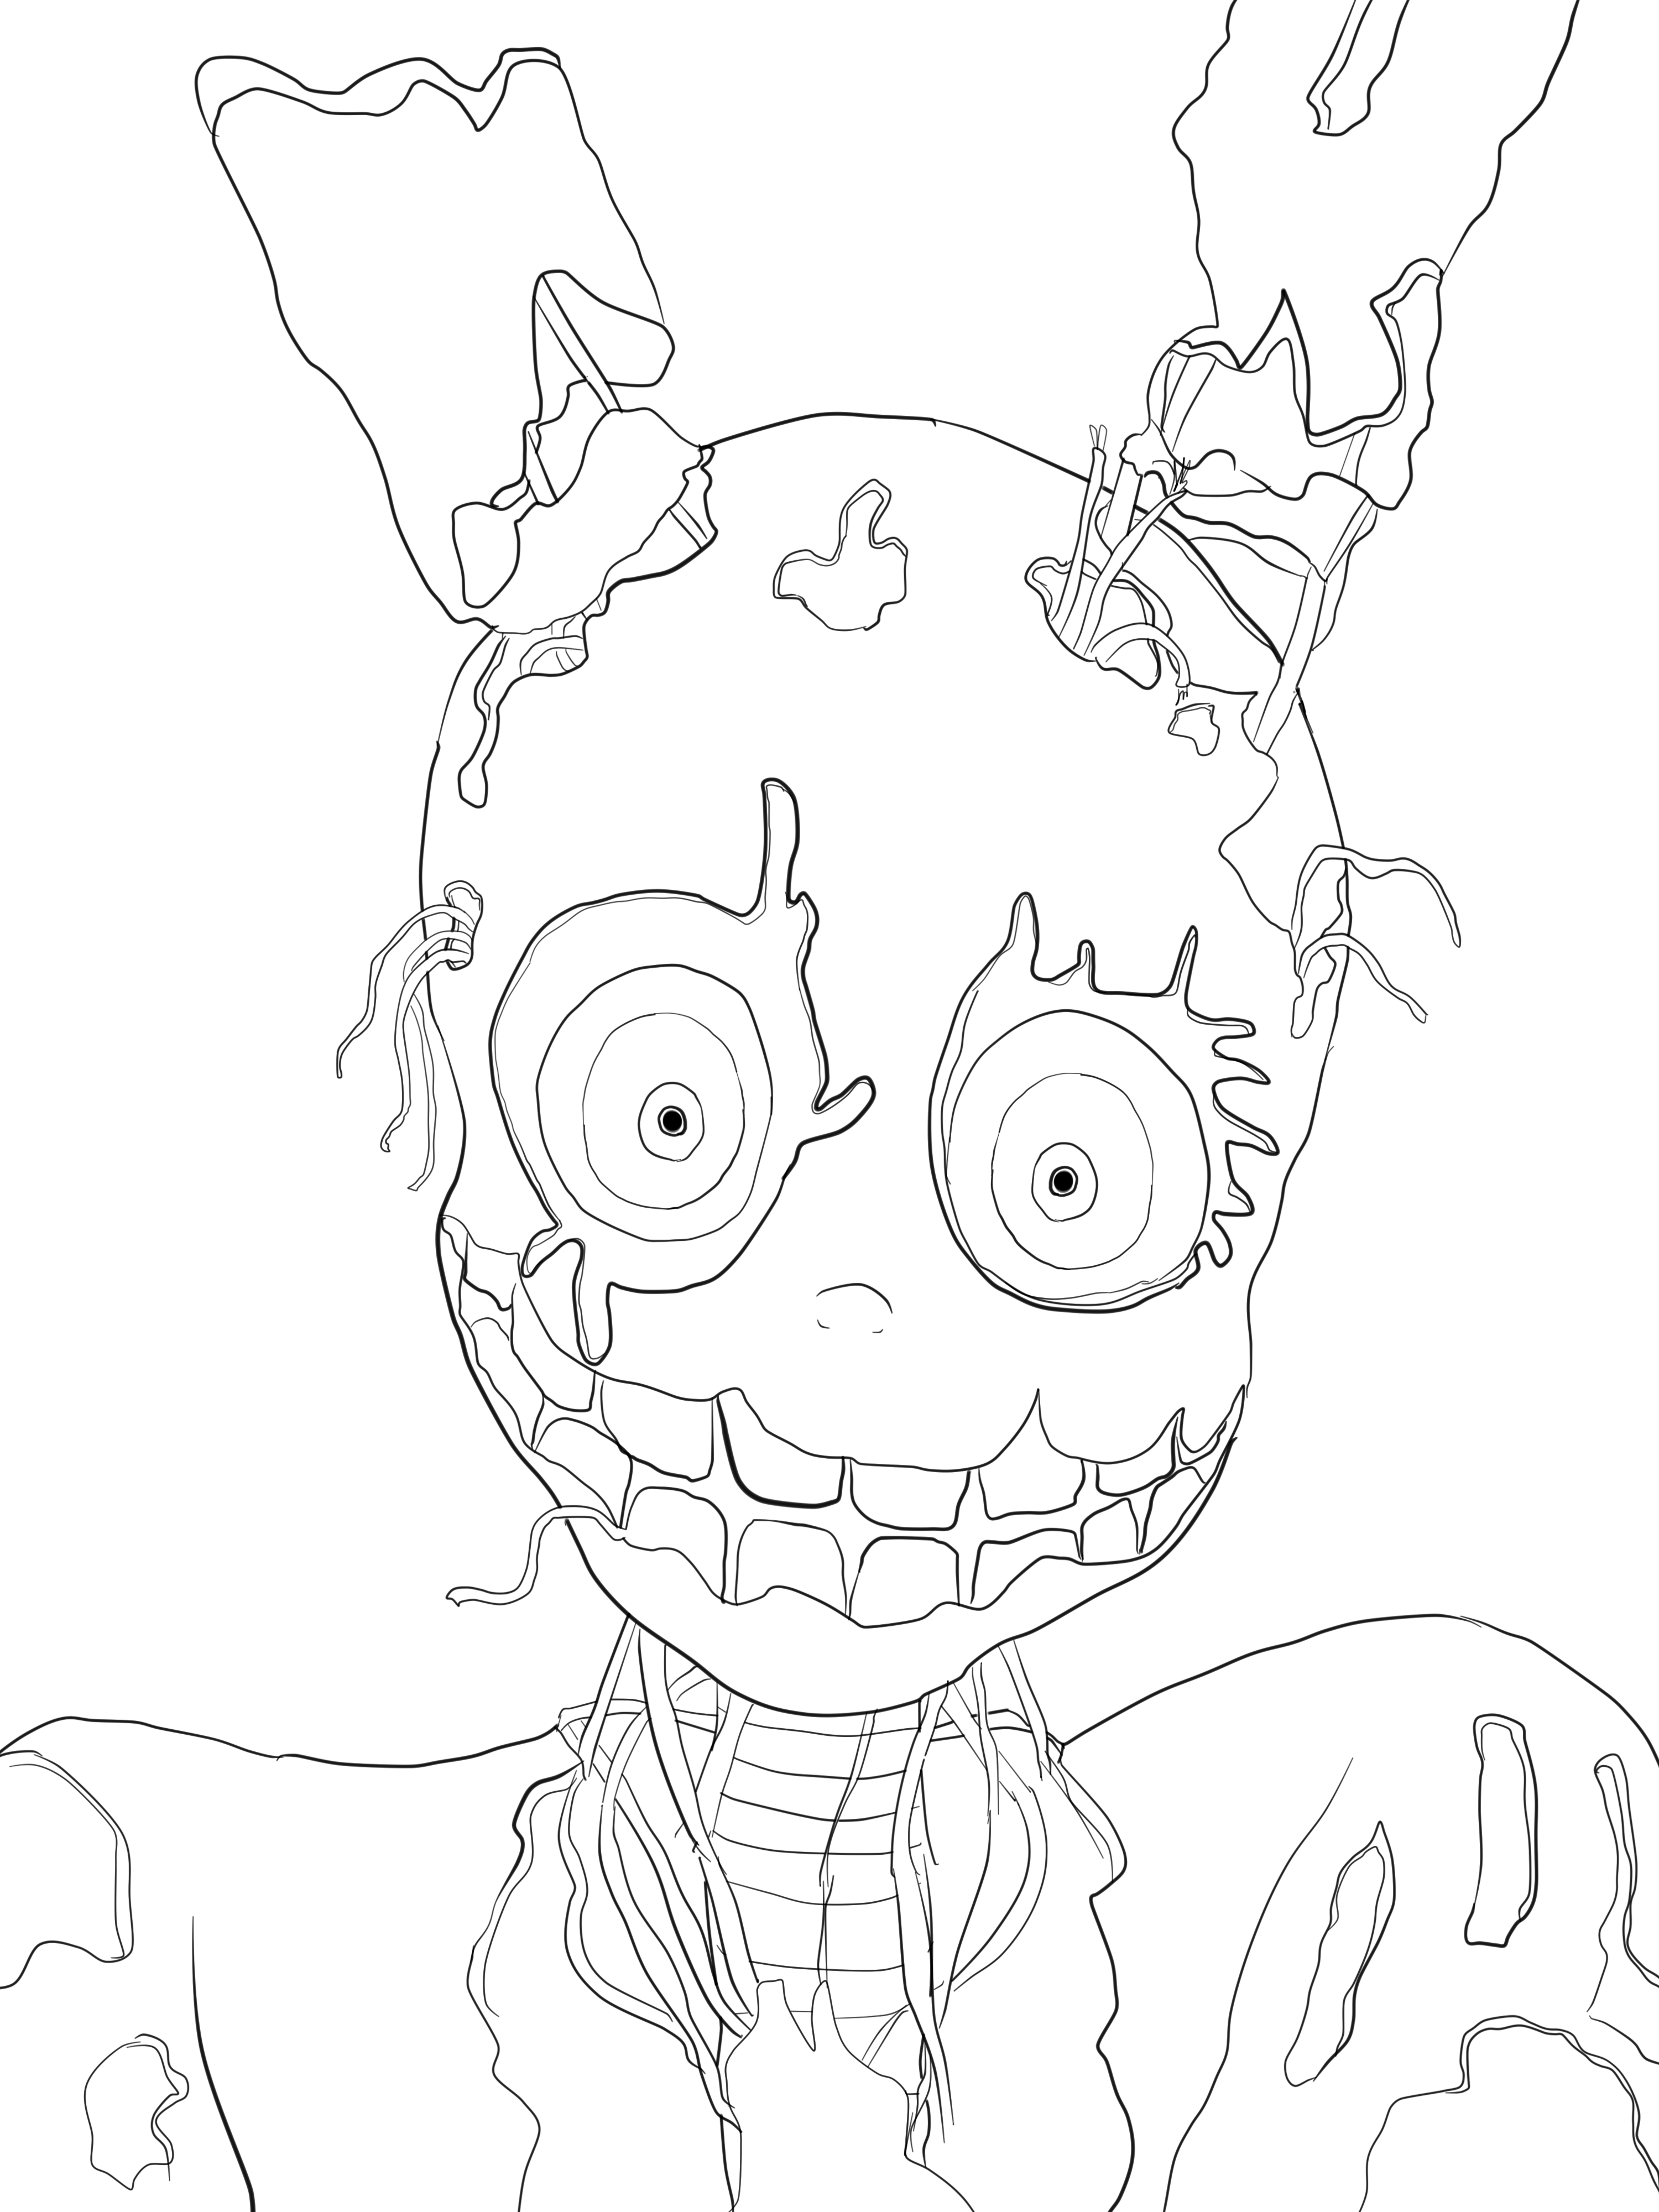 Line Art Deviantart : Ballora drawing related keywords long